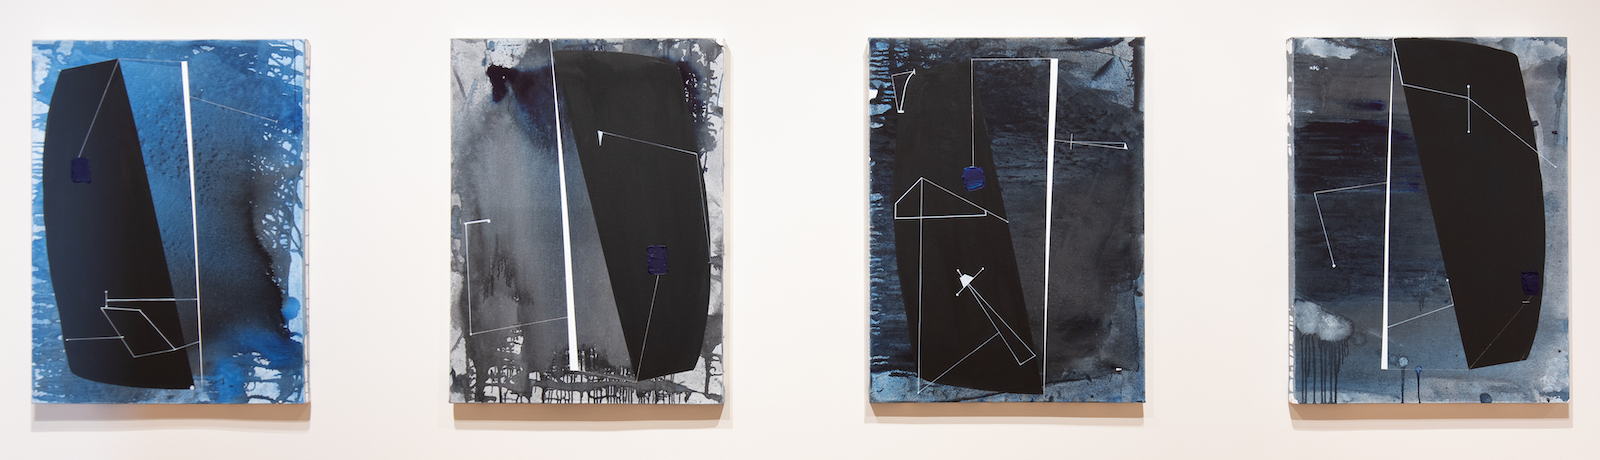 A series of fifteen abstract paintings by African American artist Torkwase Dyson examine the legacy of plantation economies.